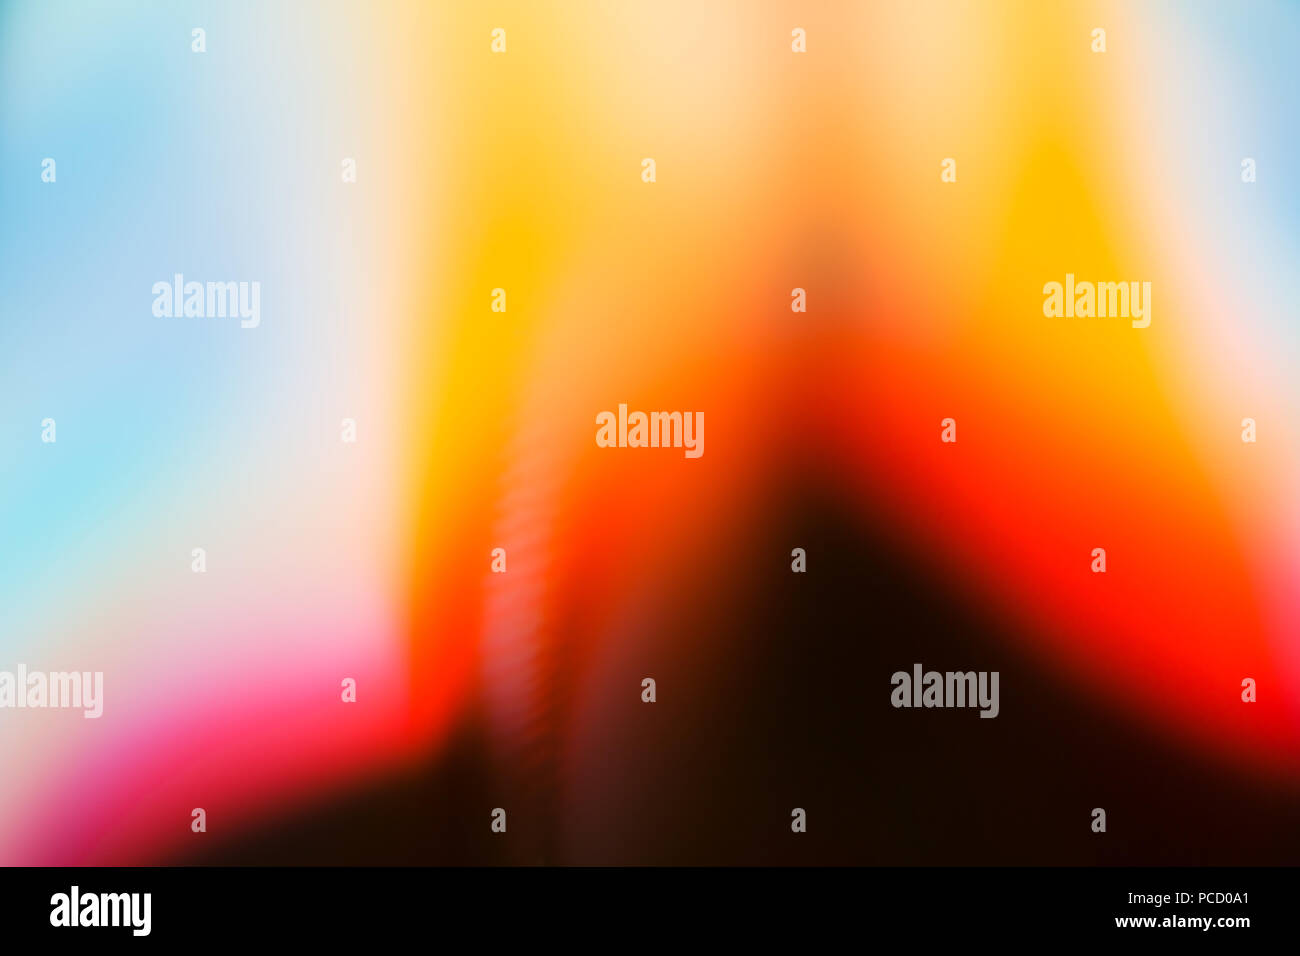 Abstract Photograph Blurred Vibrant Colours - Stock Image